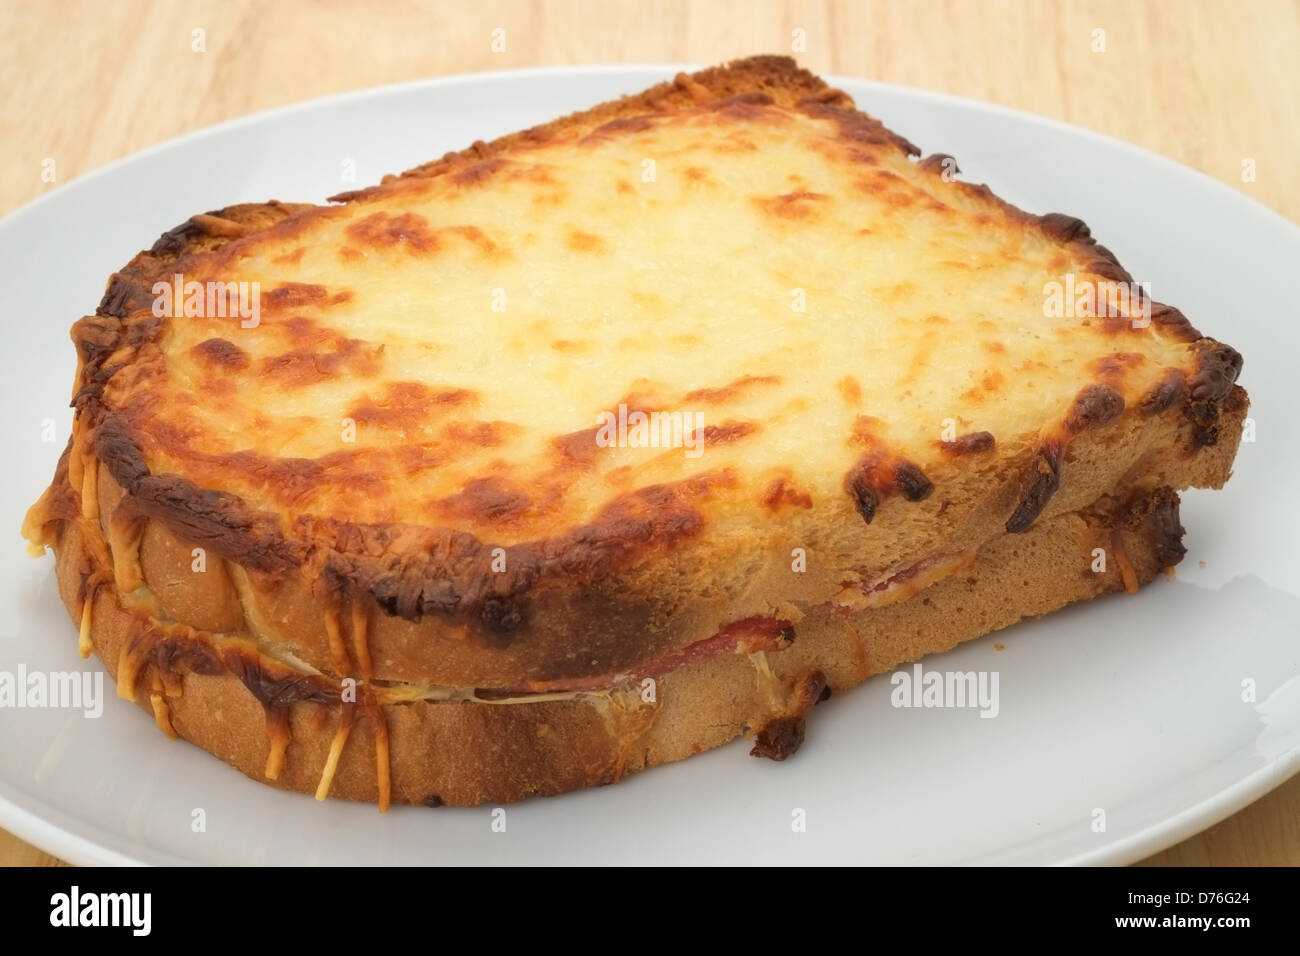 A toasted Croque Monsieur sandwich - Stock Image